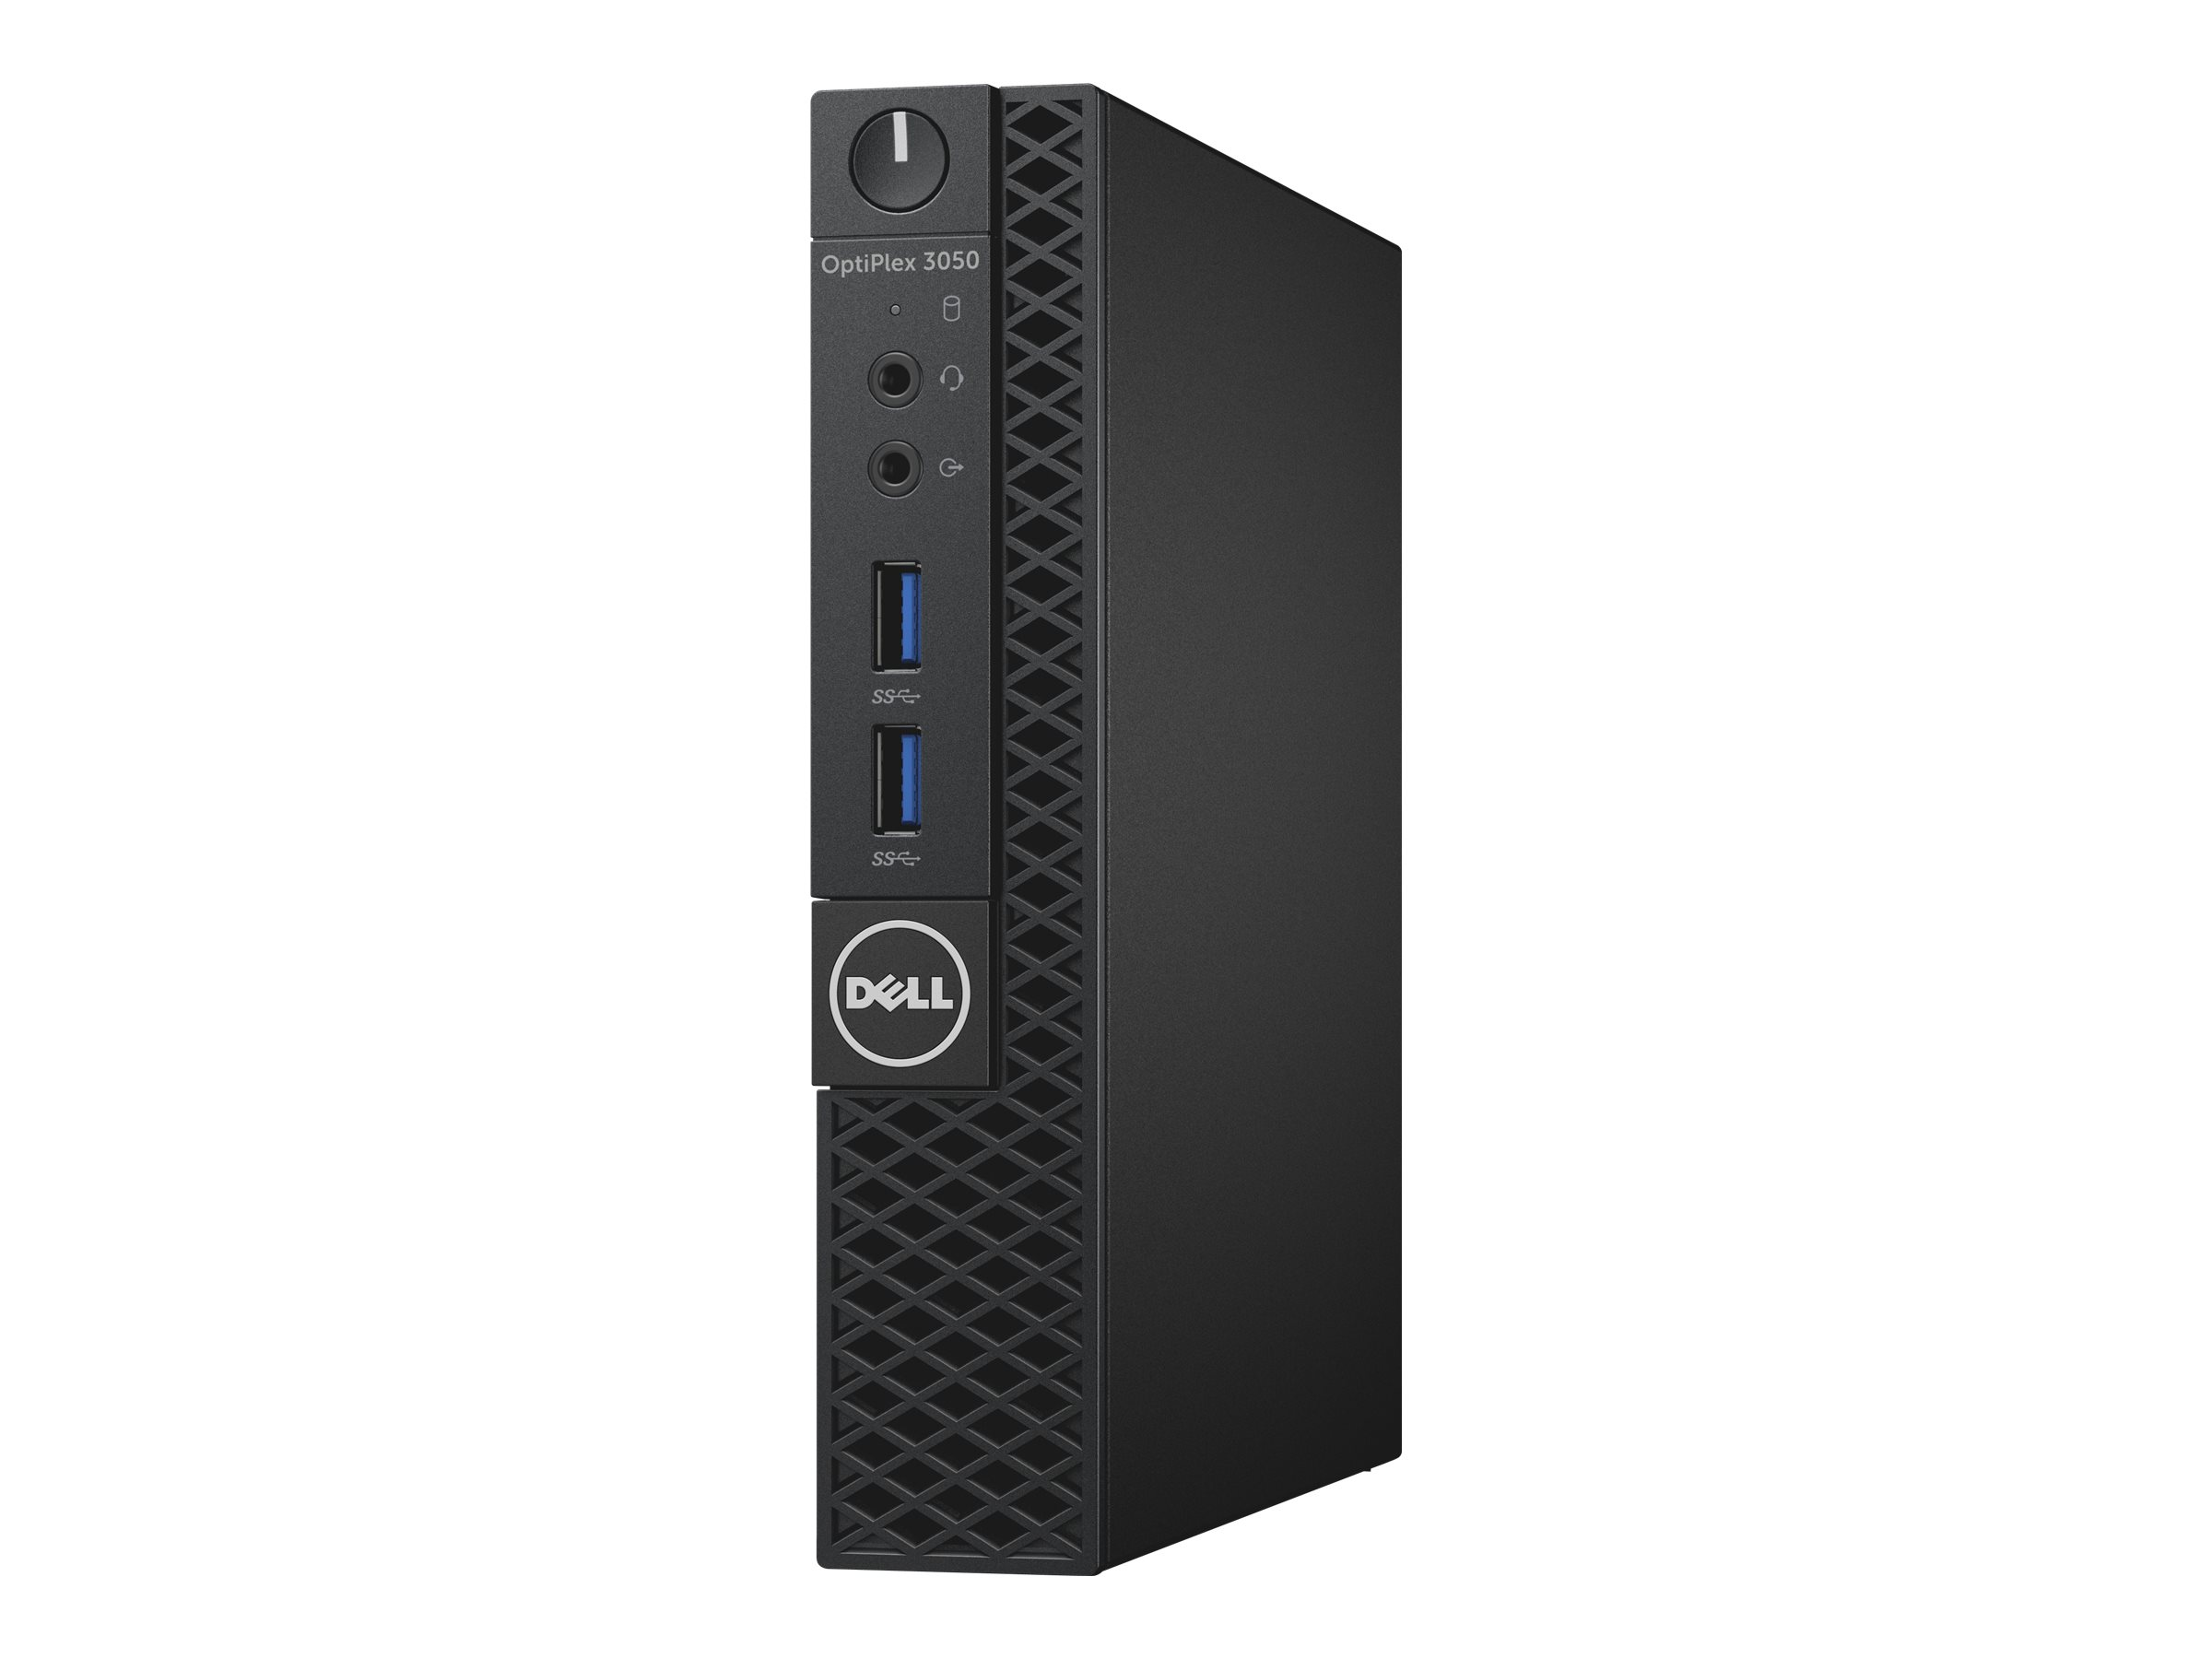 Dell OptiPlex 3050 - micro - Core i5 7500T 2.7 GHz - 8 GB - 256 GB